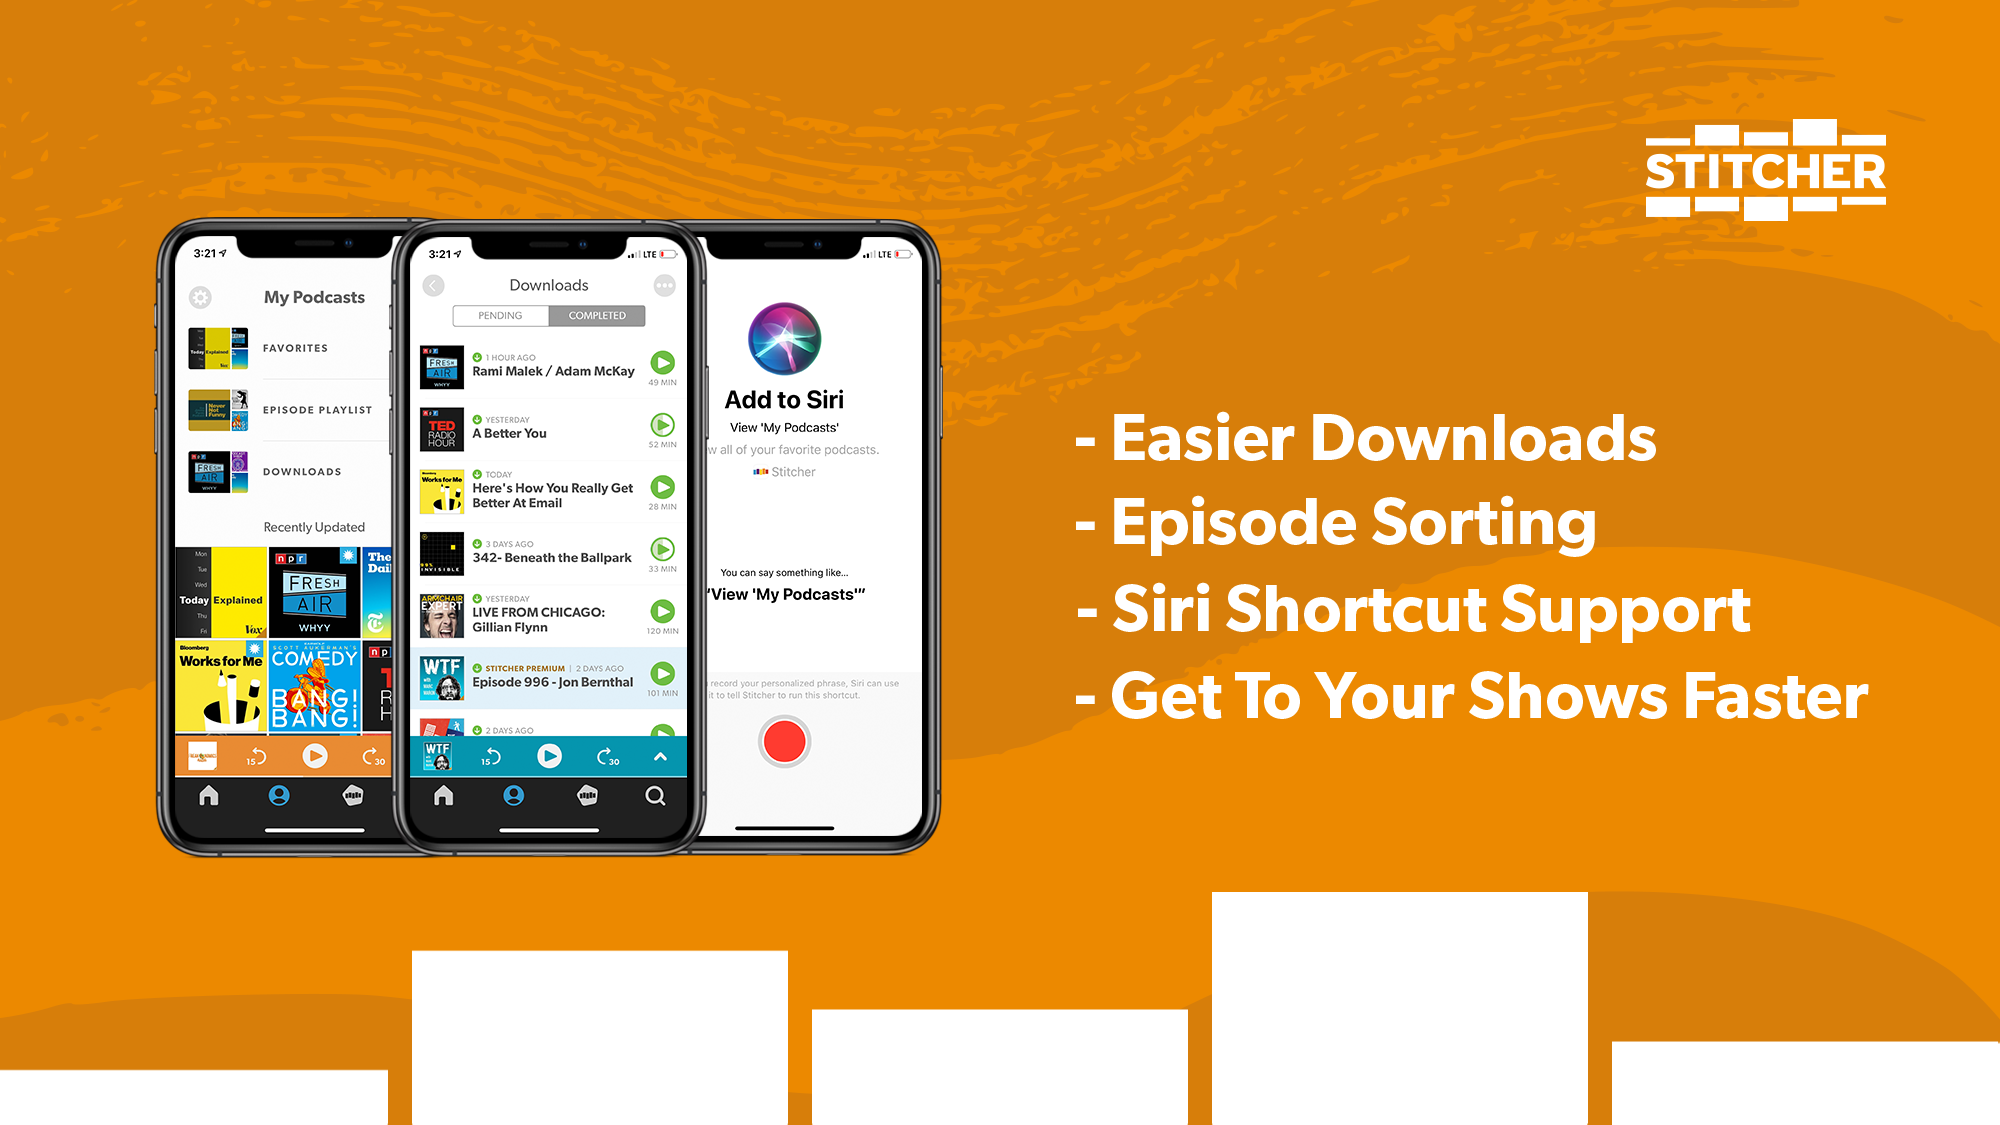 Stitcher for iOS Just Got Even Better (And Easier) - Stitcher Blog